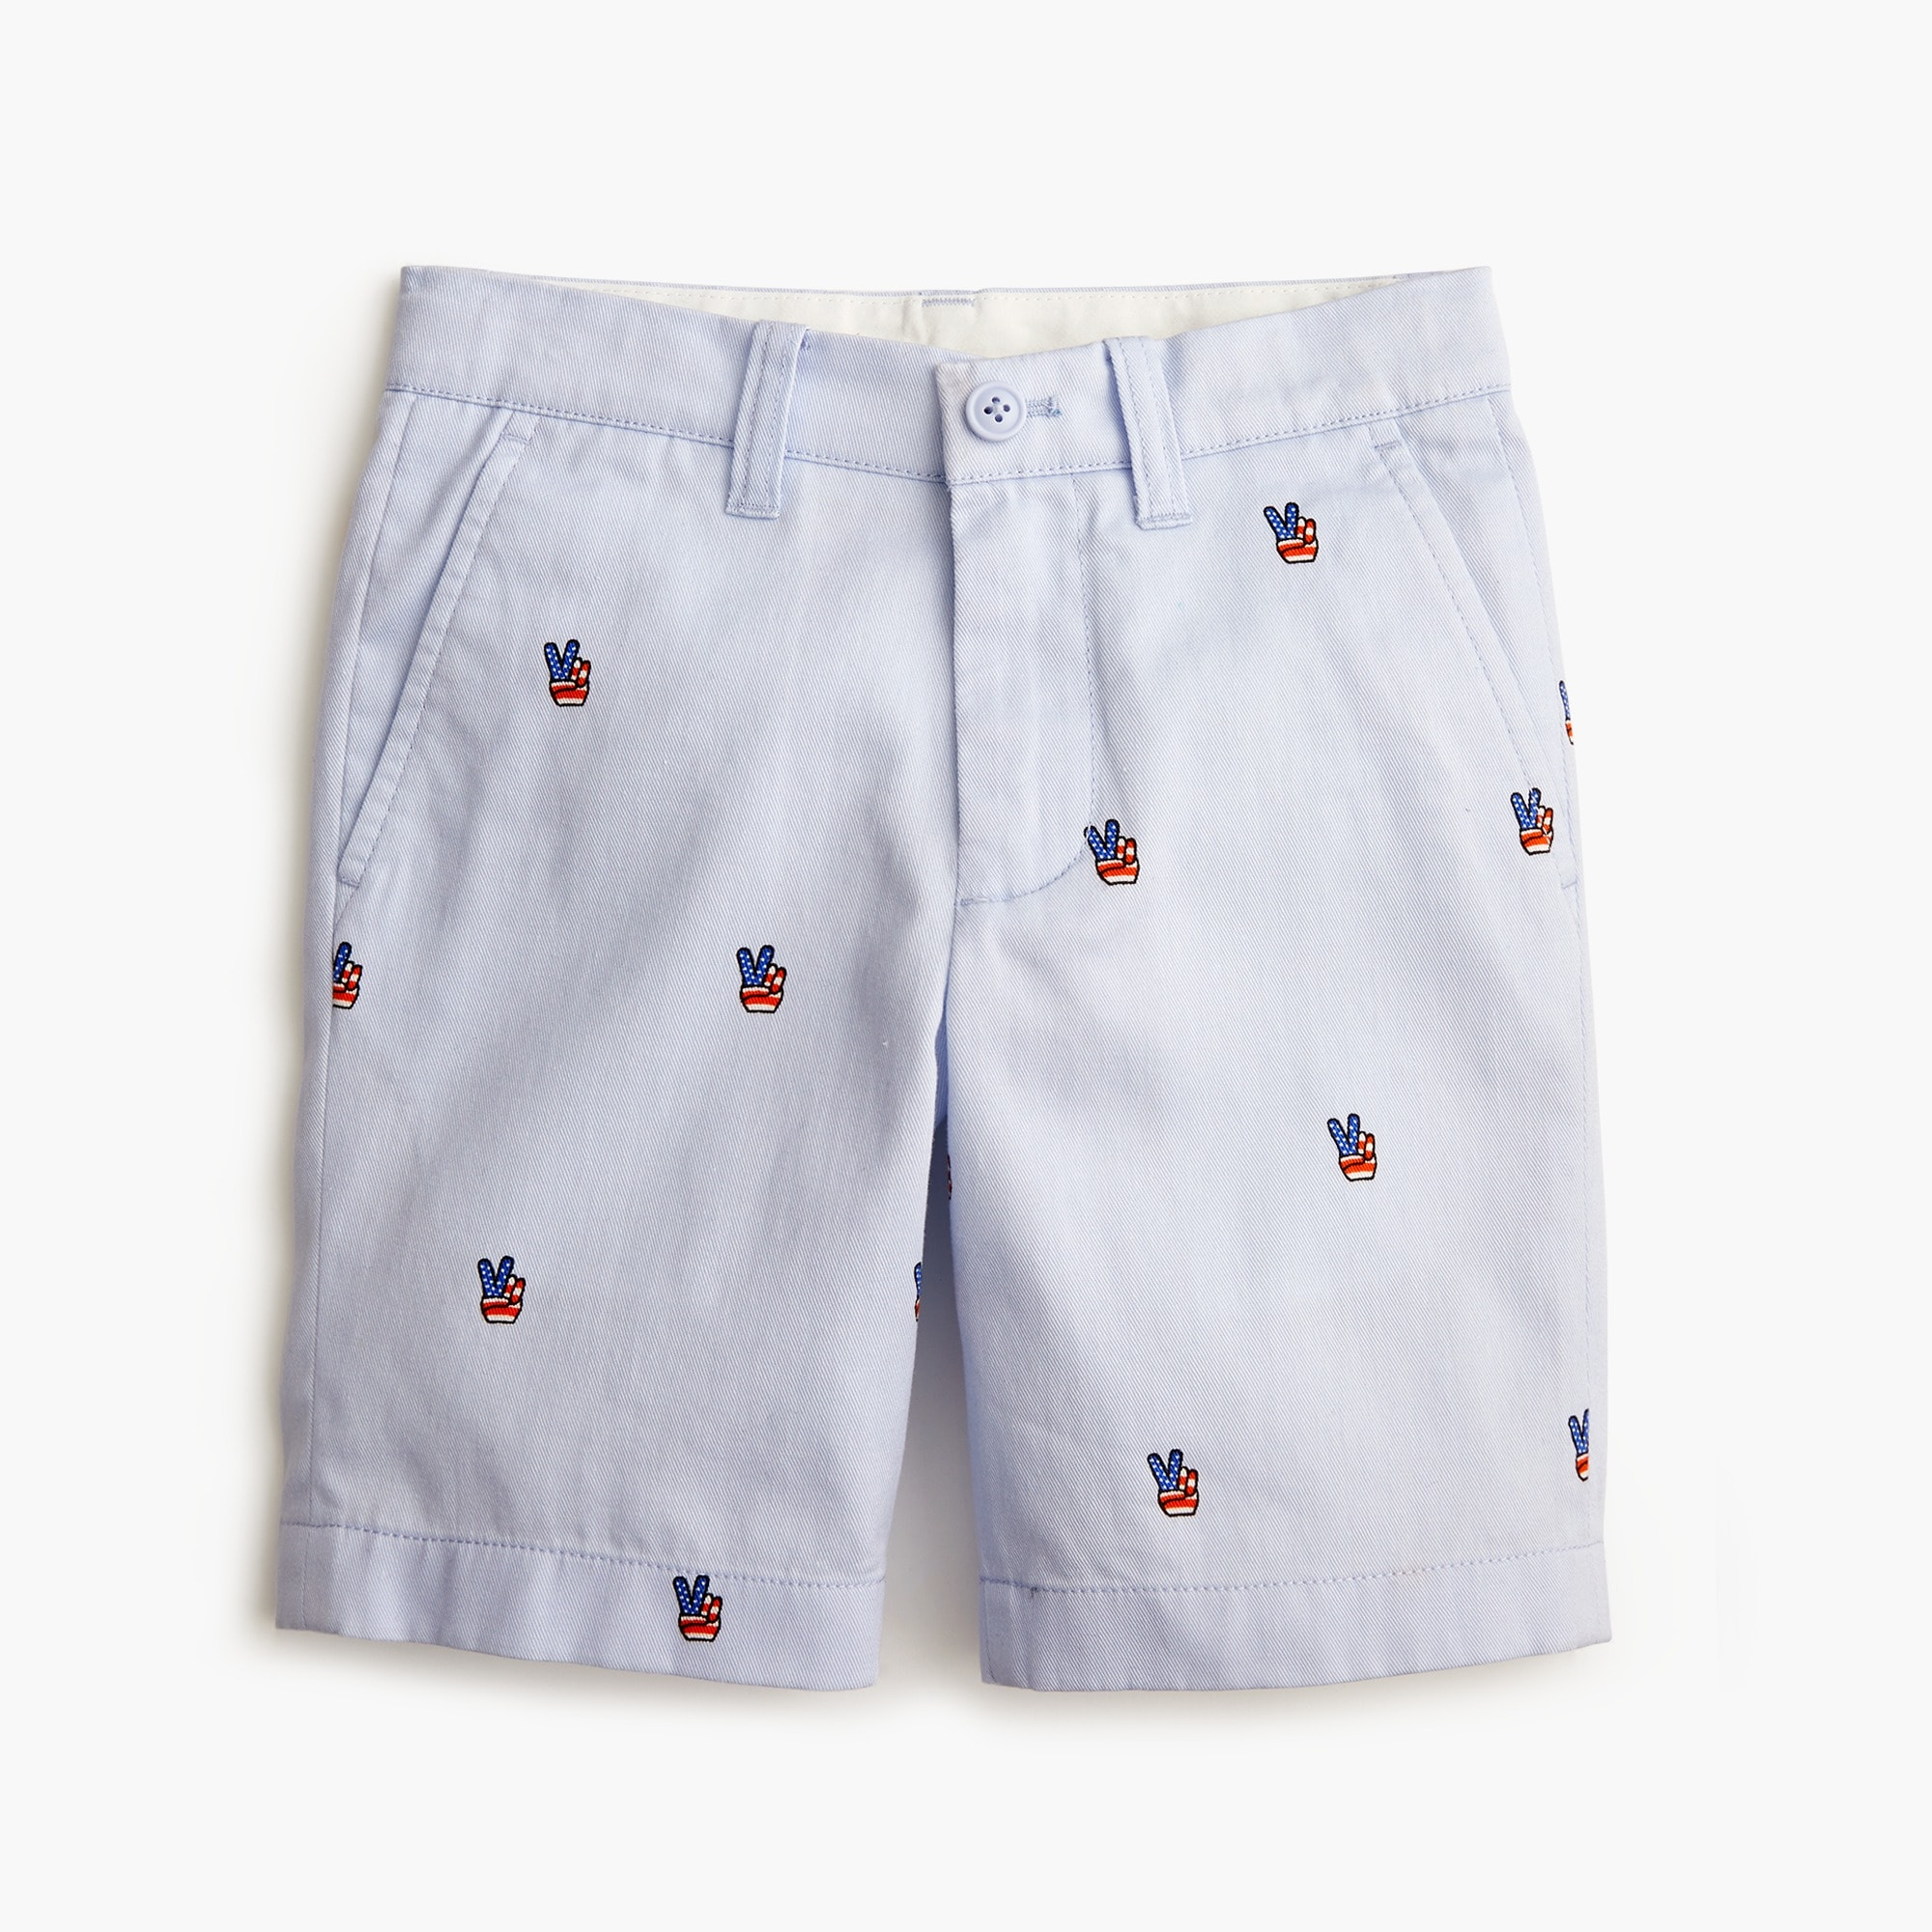 Boys' Stanton critter short in peace signs boy new arrivals c